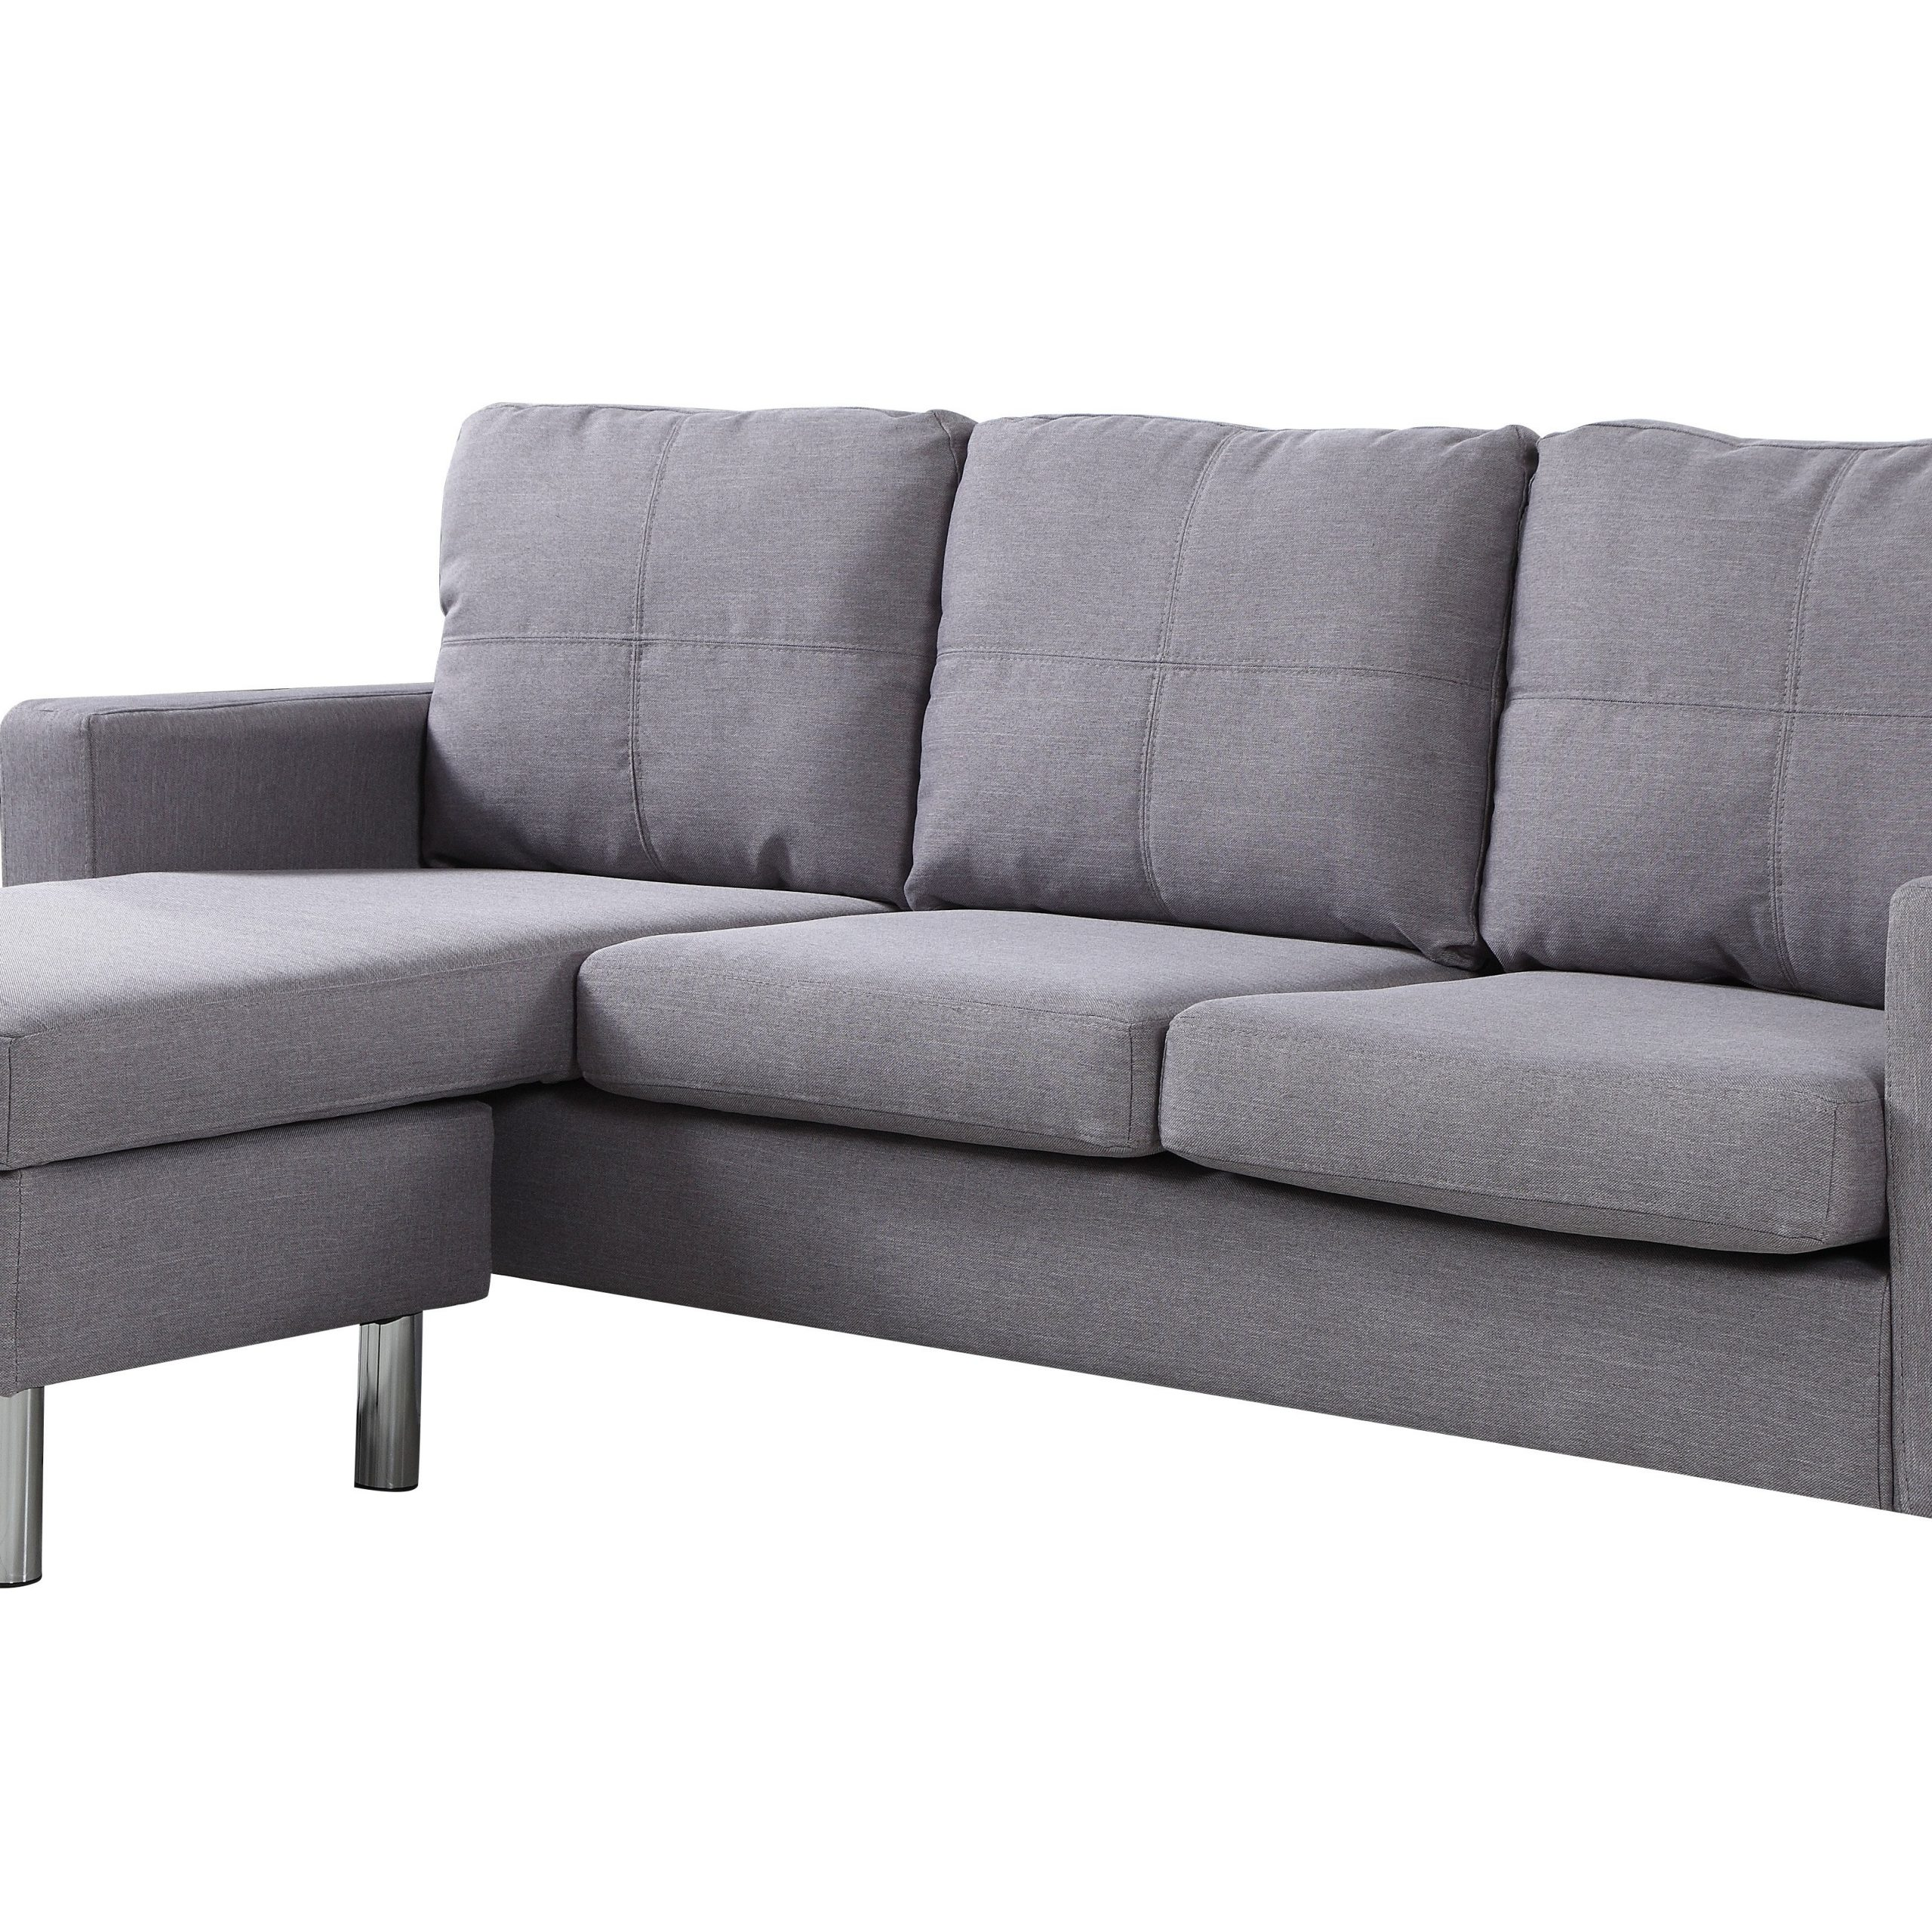 Modern Living Reversible Fabric Sectional Sofa, Light Grey Inside Most Up To Date 2Pc Crowningshield Contemporary Chaise Sofas Light Gray (View 4 of 25)